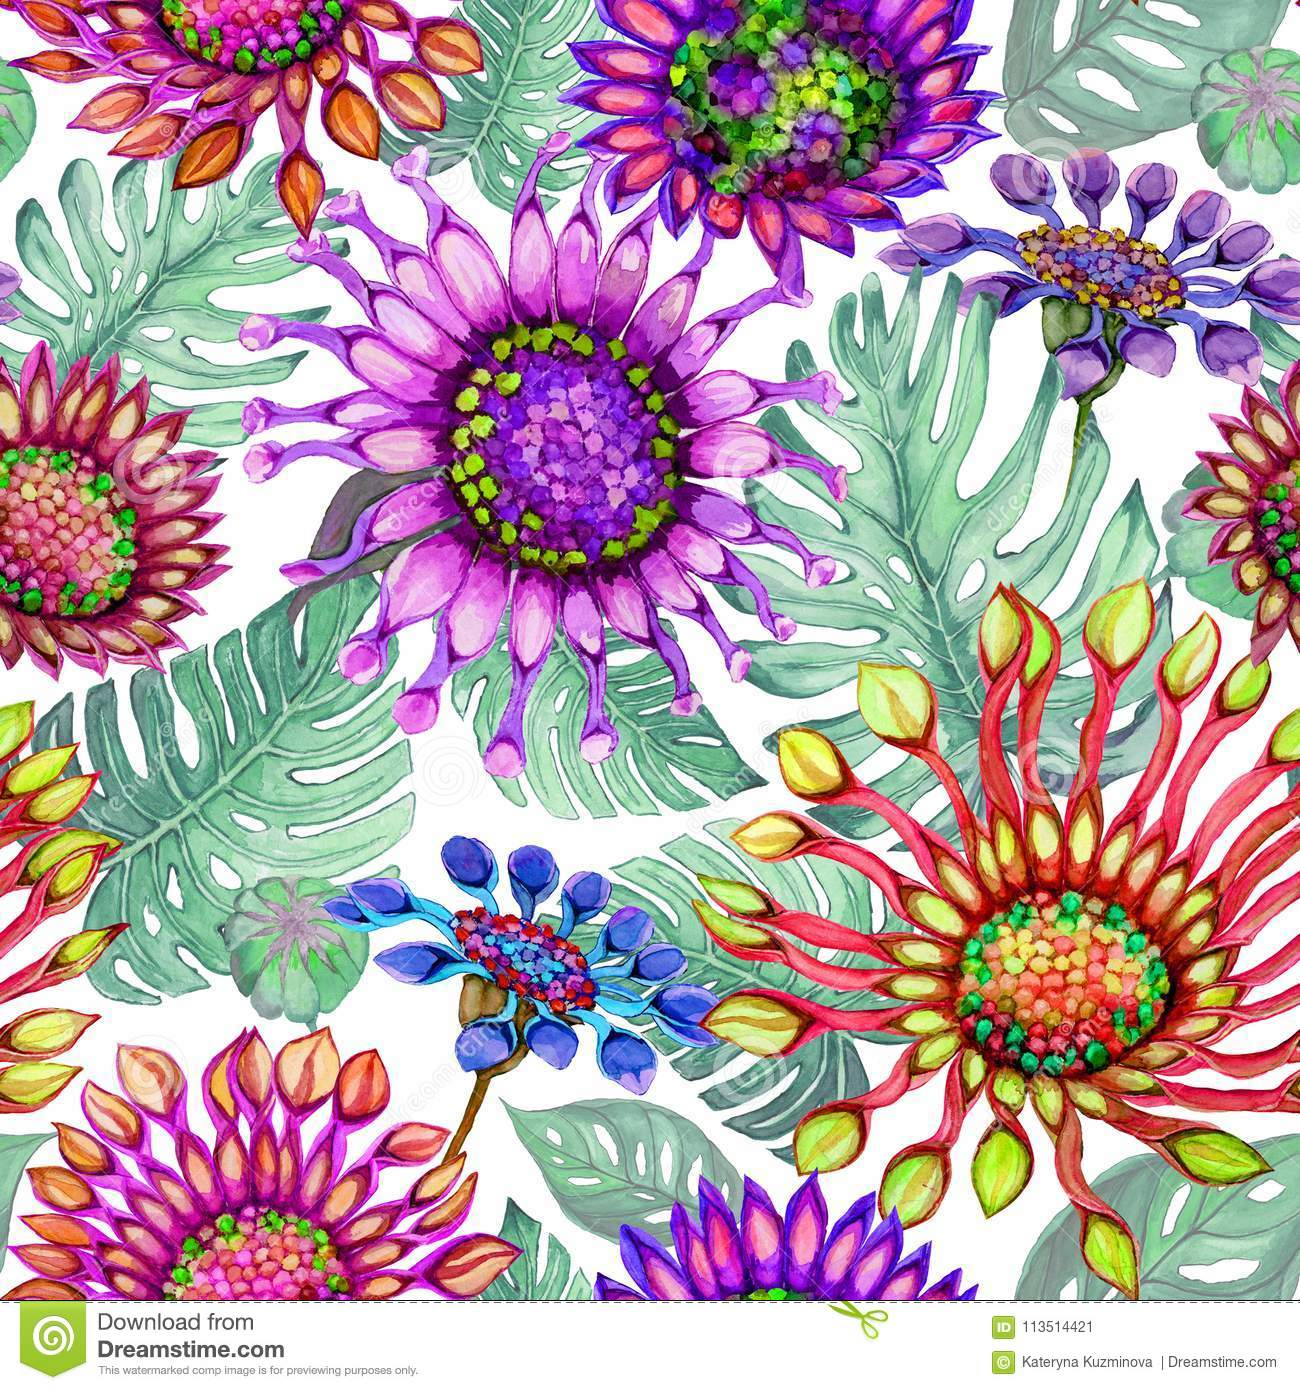 Beautiful large vivid African daisy flowers with green monstera leaves on white background. Seamless bright floral pattern.